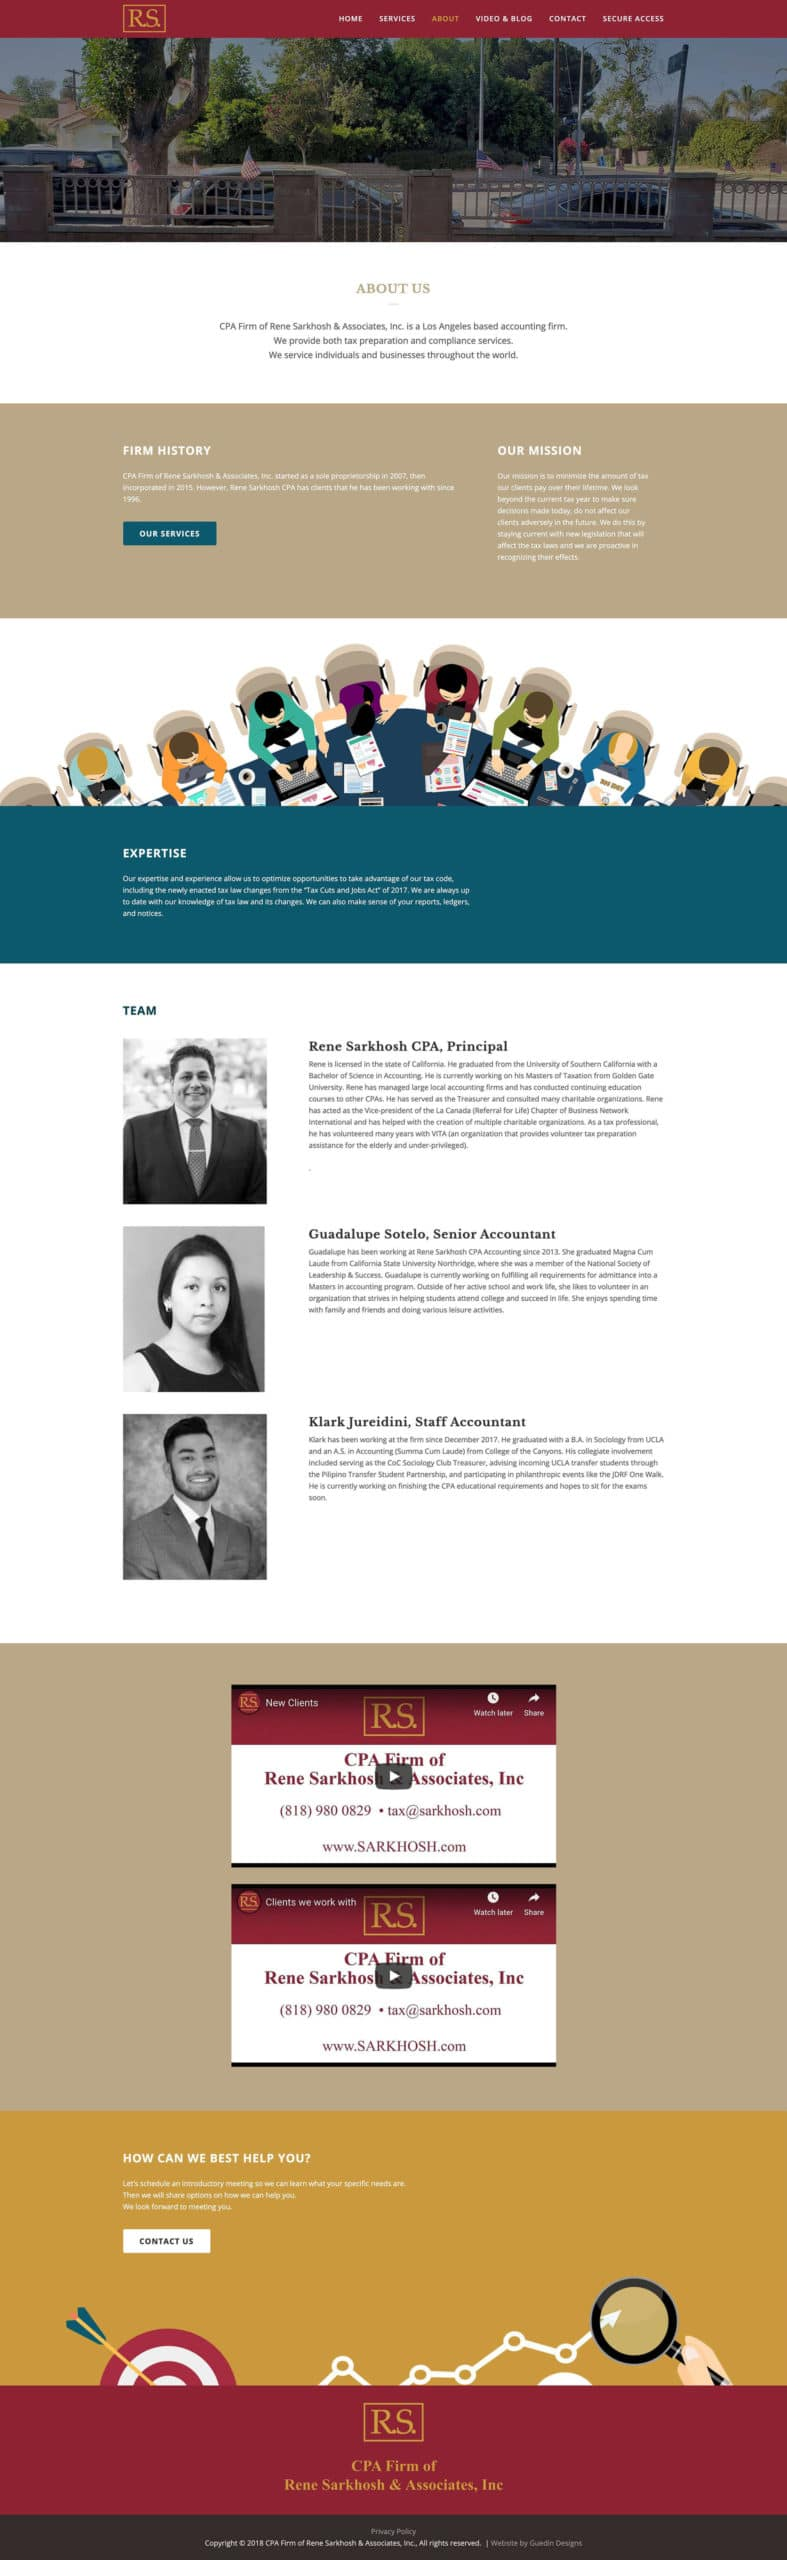 Snapshot of CPA about page. Web design by Guedin Designs